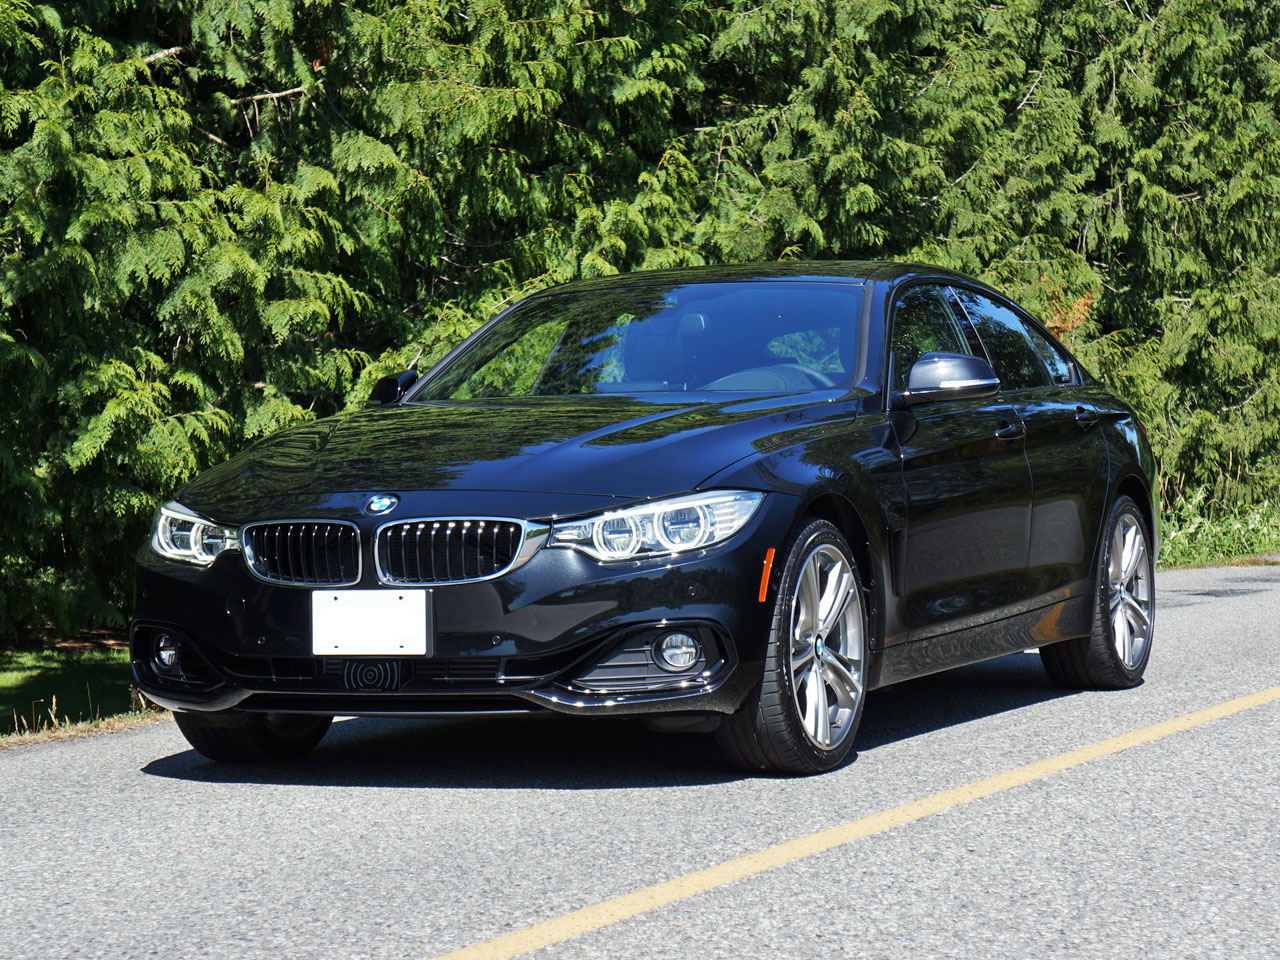 2015 Bmw 428i Xdrive Gran Coupe Road Test Review